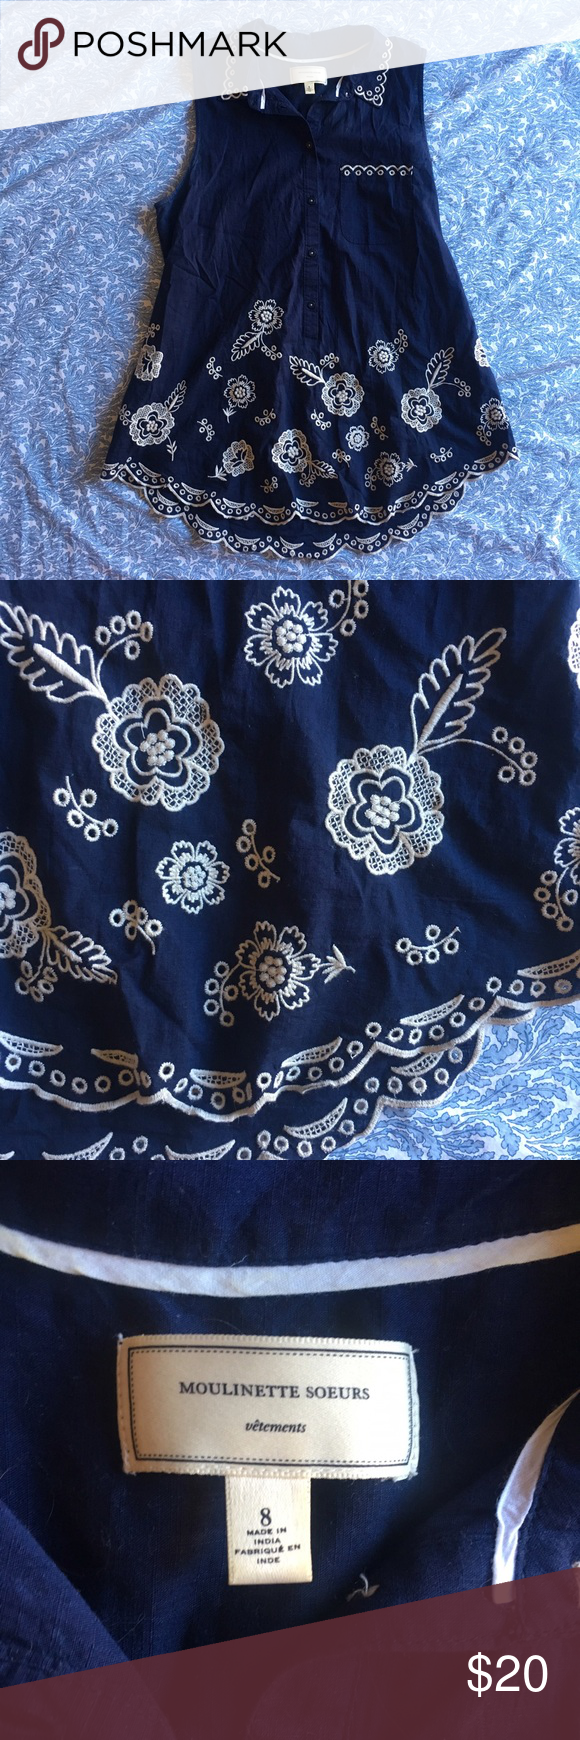 Moulinette Soeurs navy floral embroidered top Worn but in great condition Anthropologie Tops Tank Tops